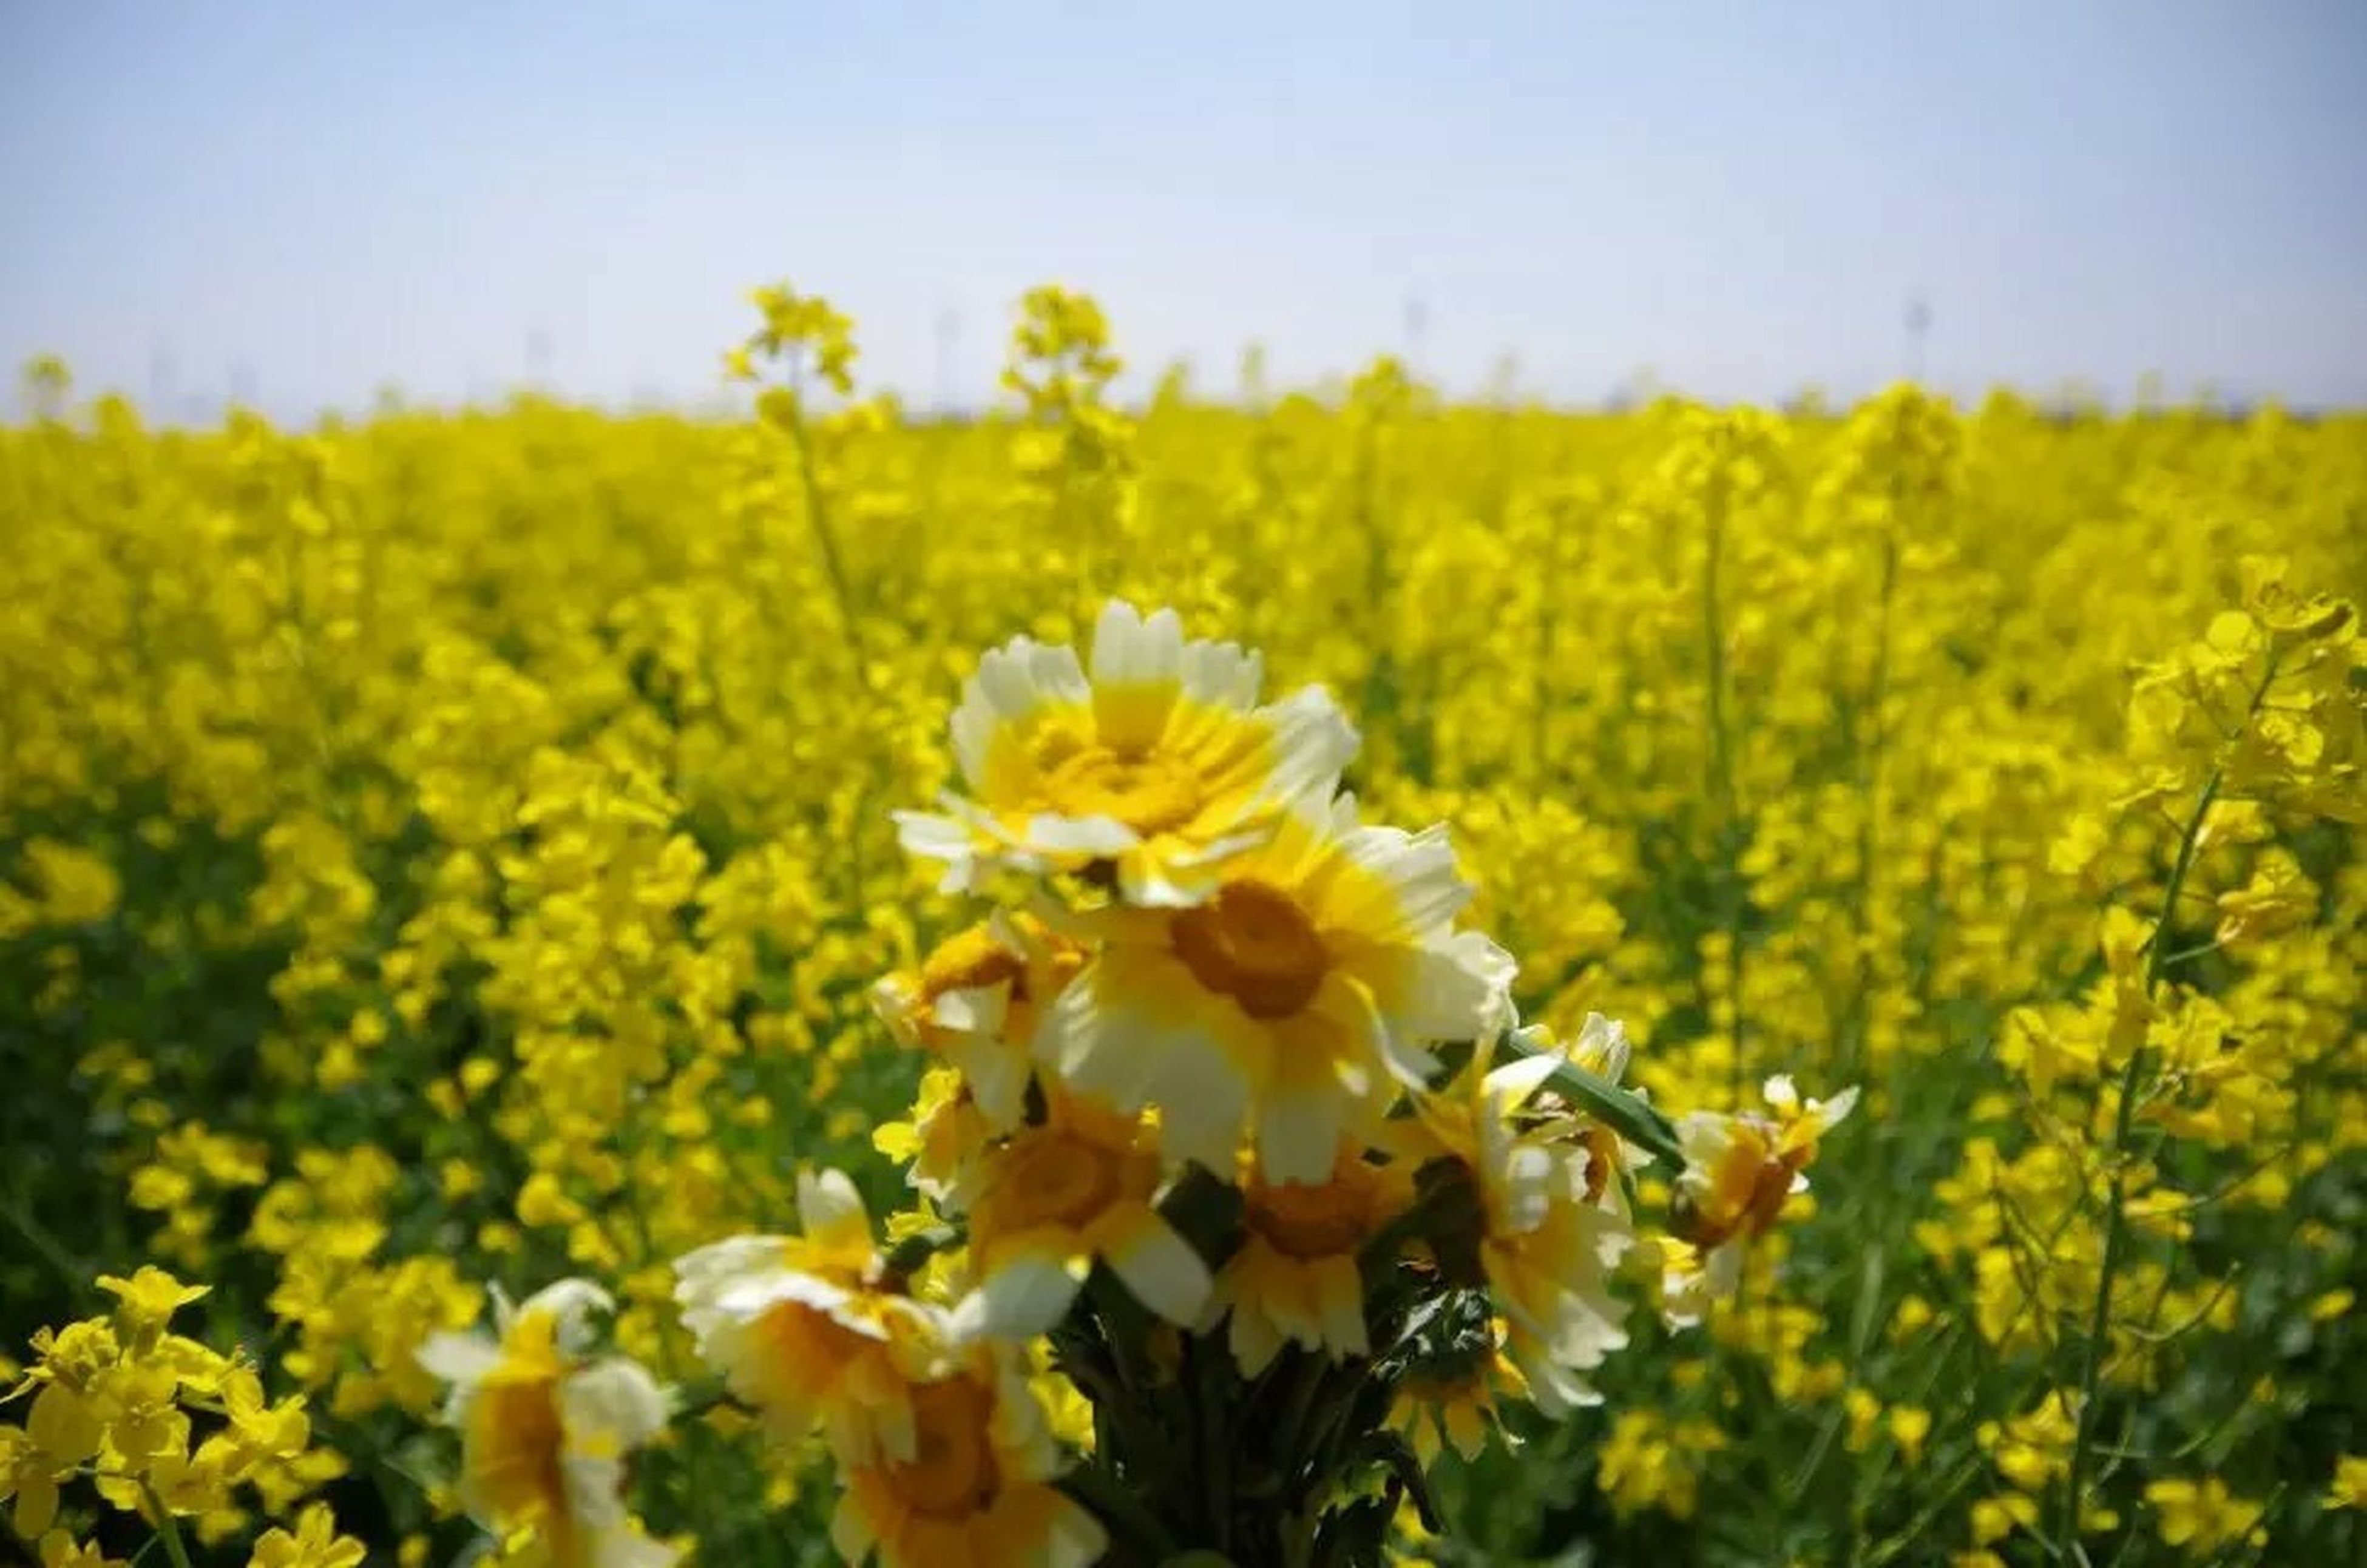 flower, freshness, yellow, growth, fragility, beauty in nature, field, petal, flower head, nature, blooming, plant, rural scene, landscape, clear sky, in bloom, focus on foreground, agriculture, sky, blossom